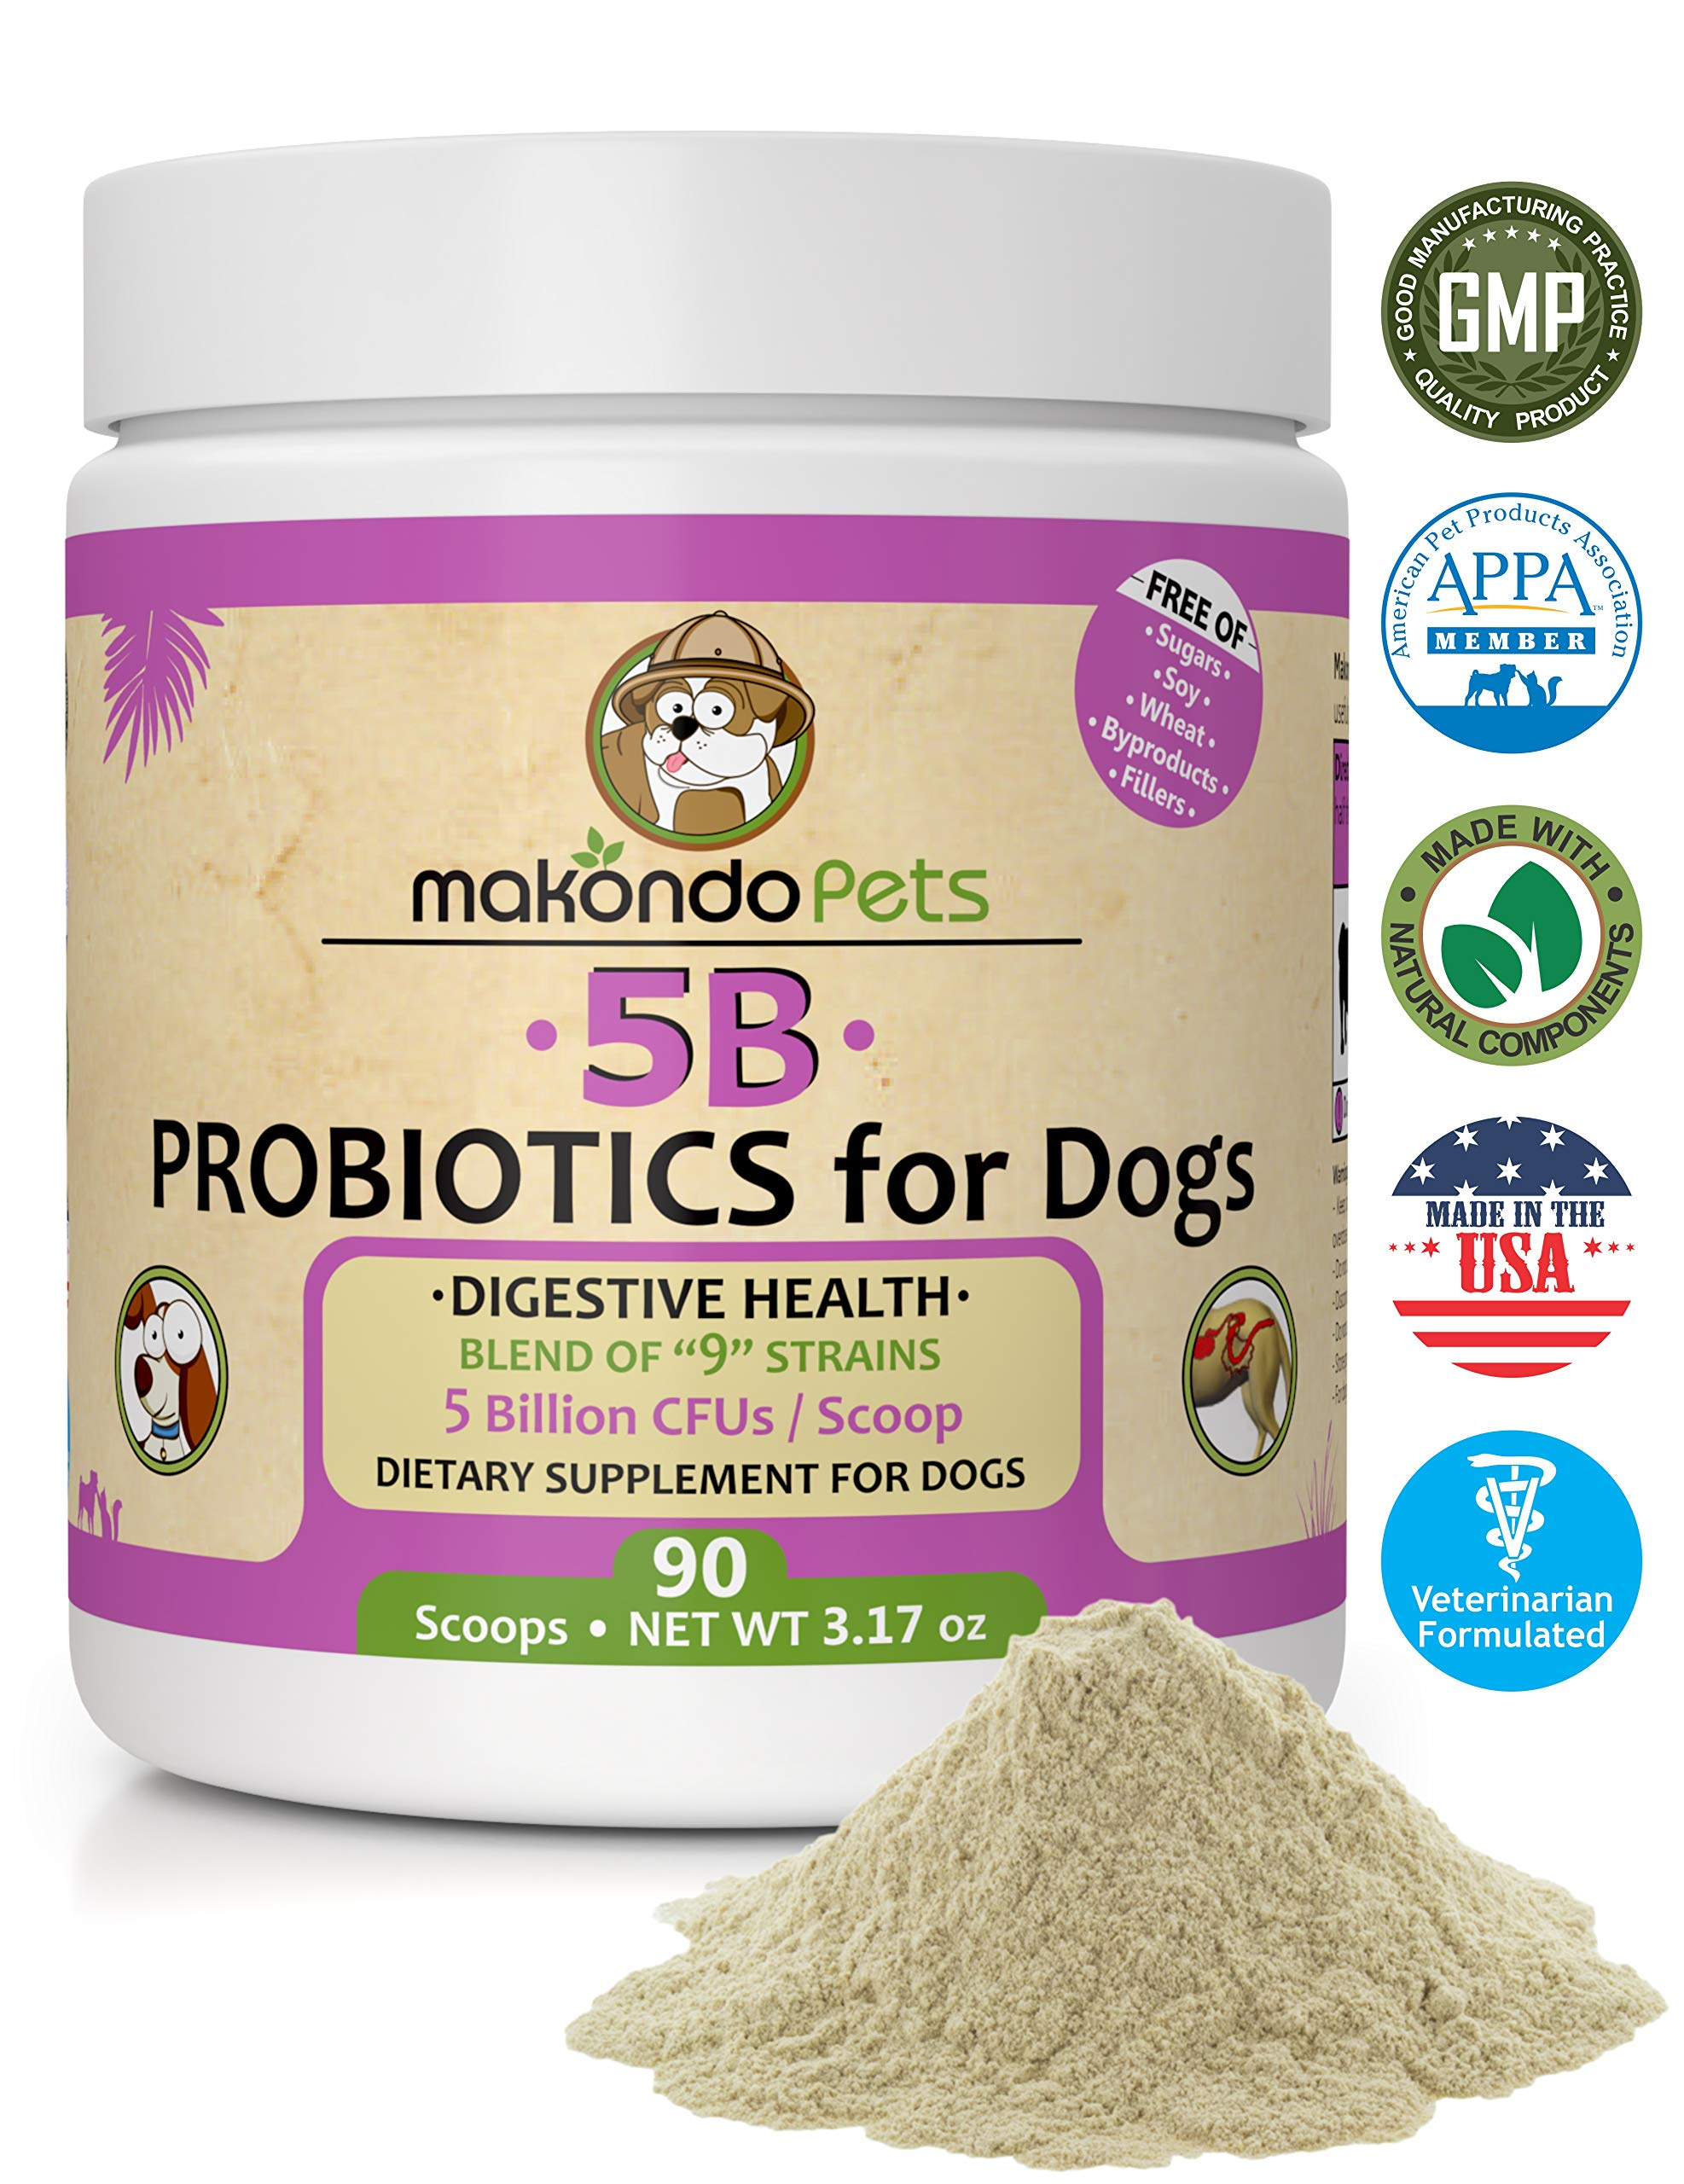 Makondo Pets Probiotics for Dogs & Puppies - Flavored, Made in USA, Extra Strength 9 Species Digestive Support Tummy Relief Enzyme Powder, 5 Billion CFUs per Scoop - 90 Scoops per Tub, 3.17 oz by Makondo Pets